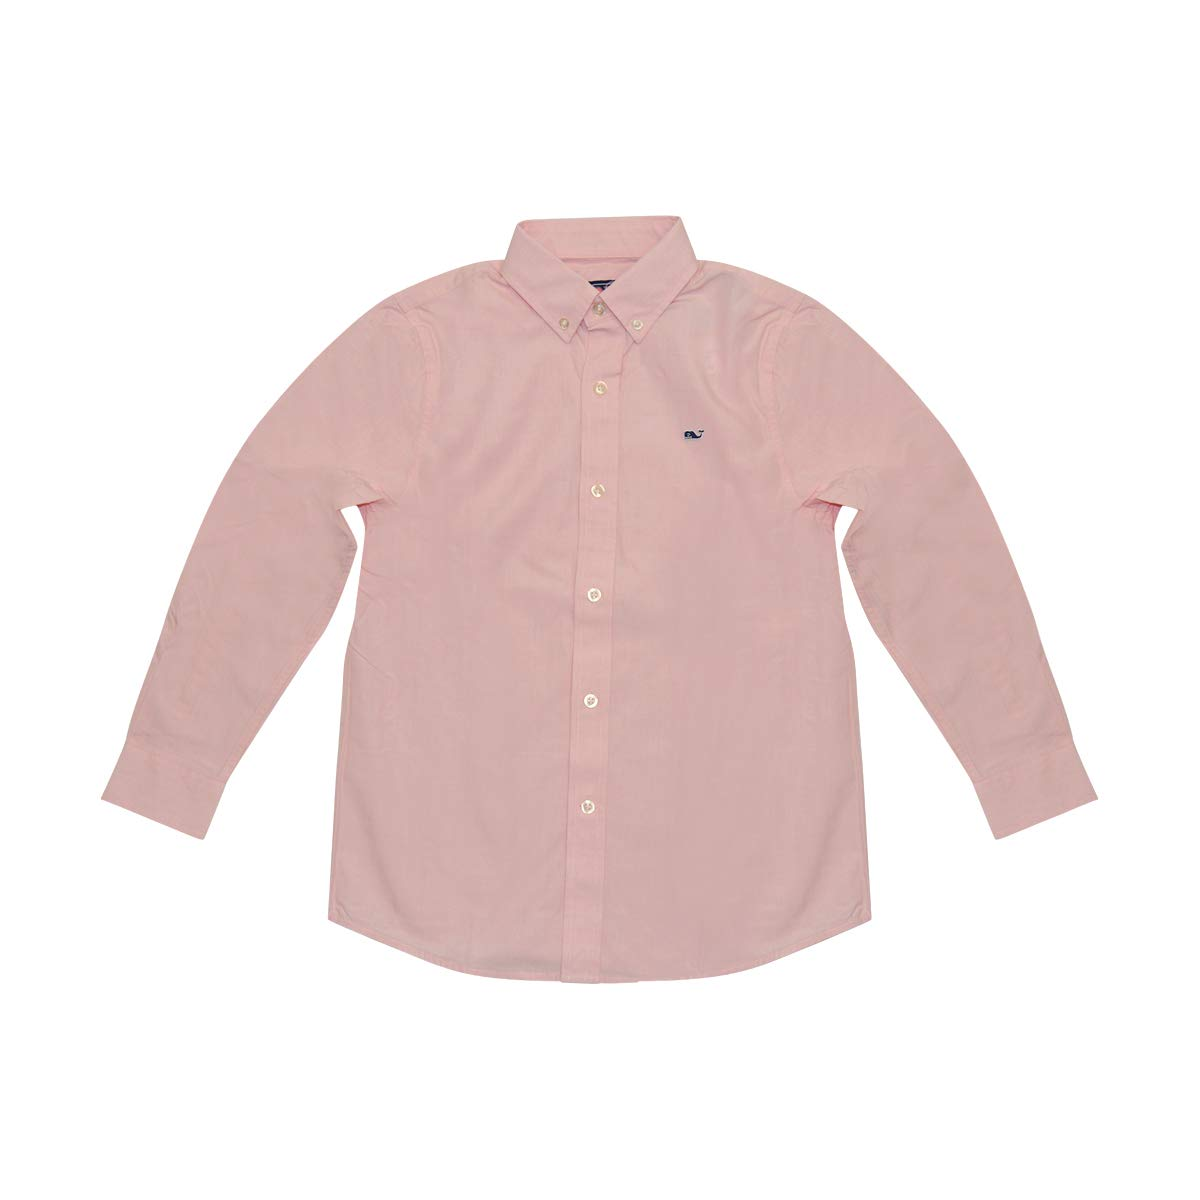 Vineyard Vines Boys Whale Shirt Long Sleeve Button Down Dress Shirt (Cape Coral, L)